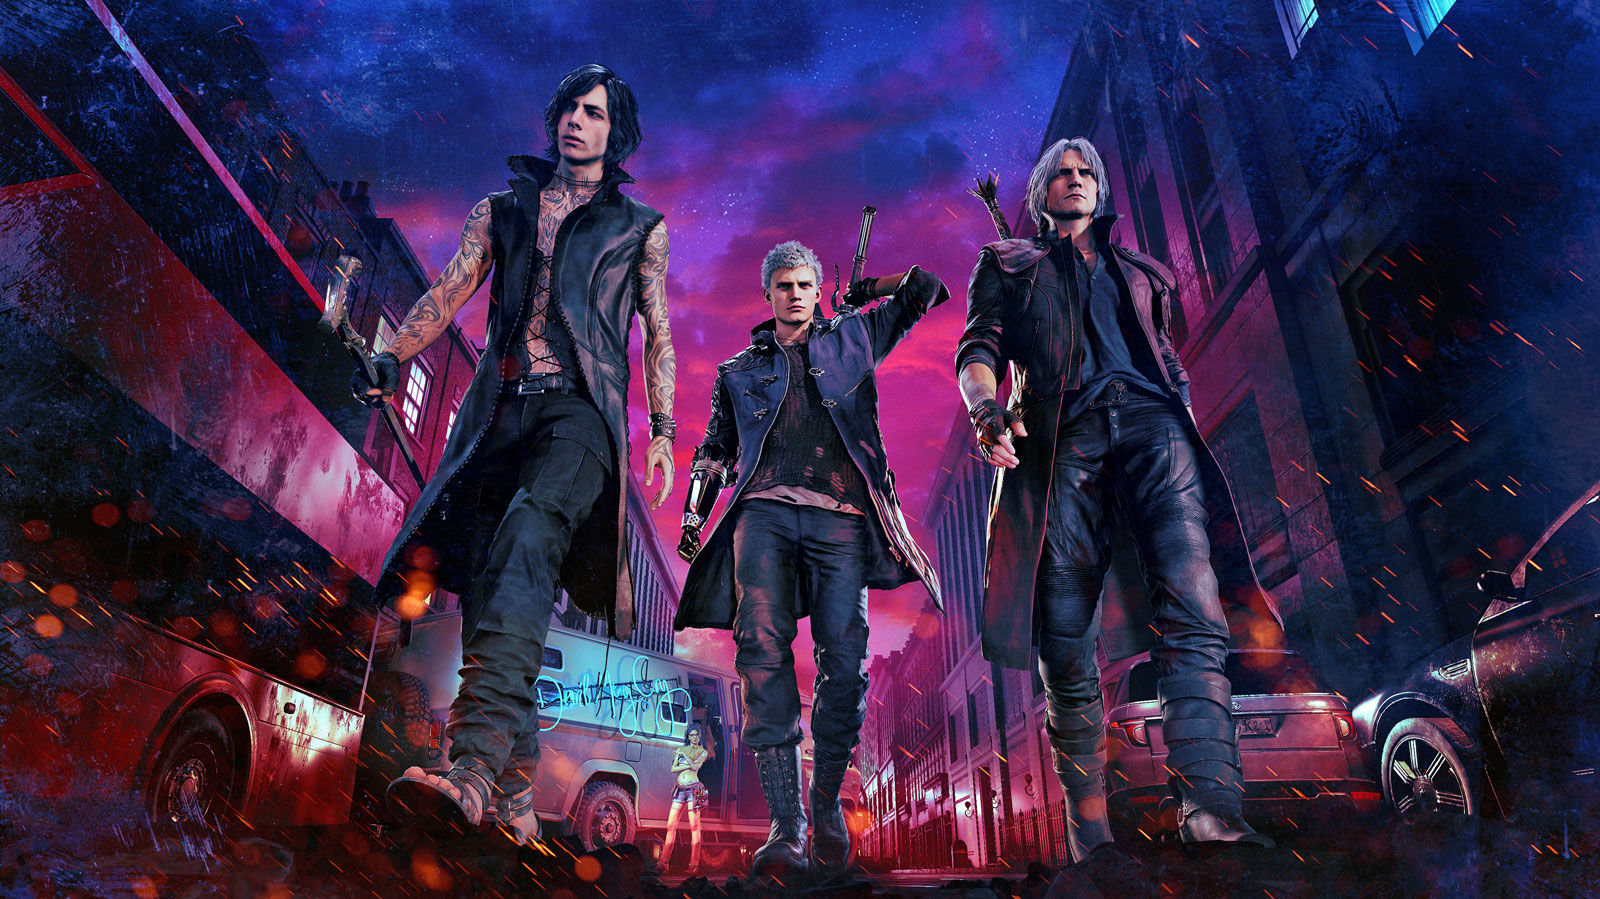 devil may cry 5, dmc 5, best abilities, dante, nero, v, to get